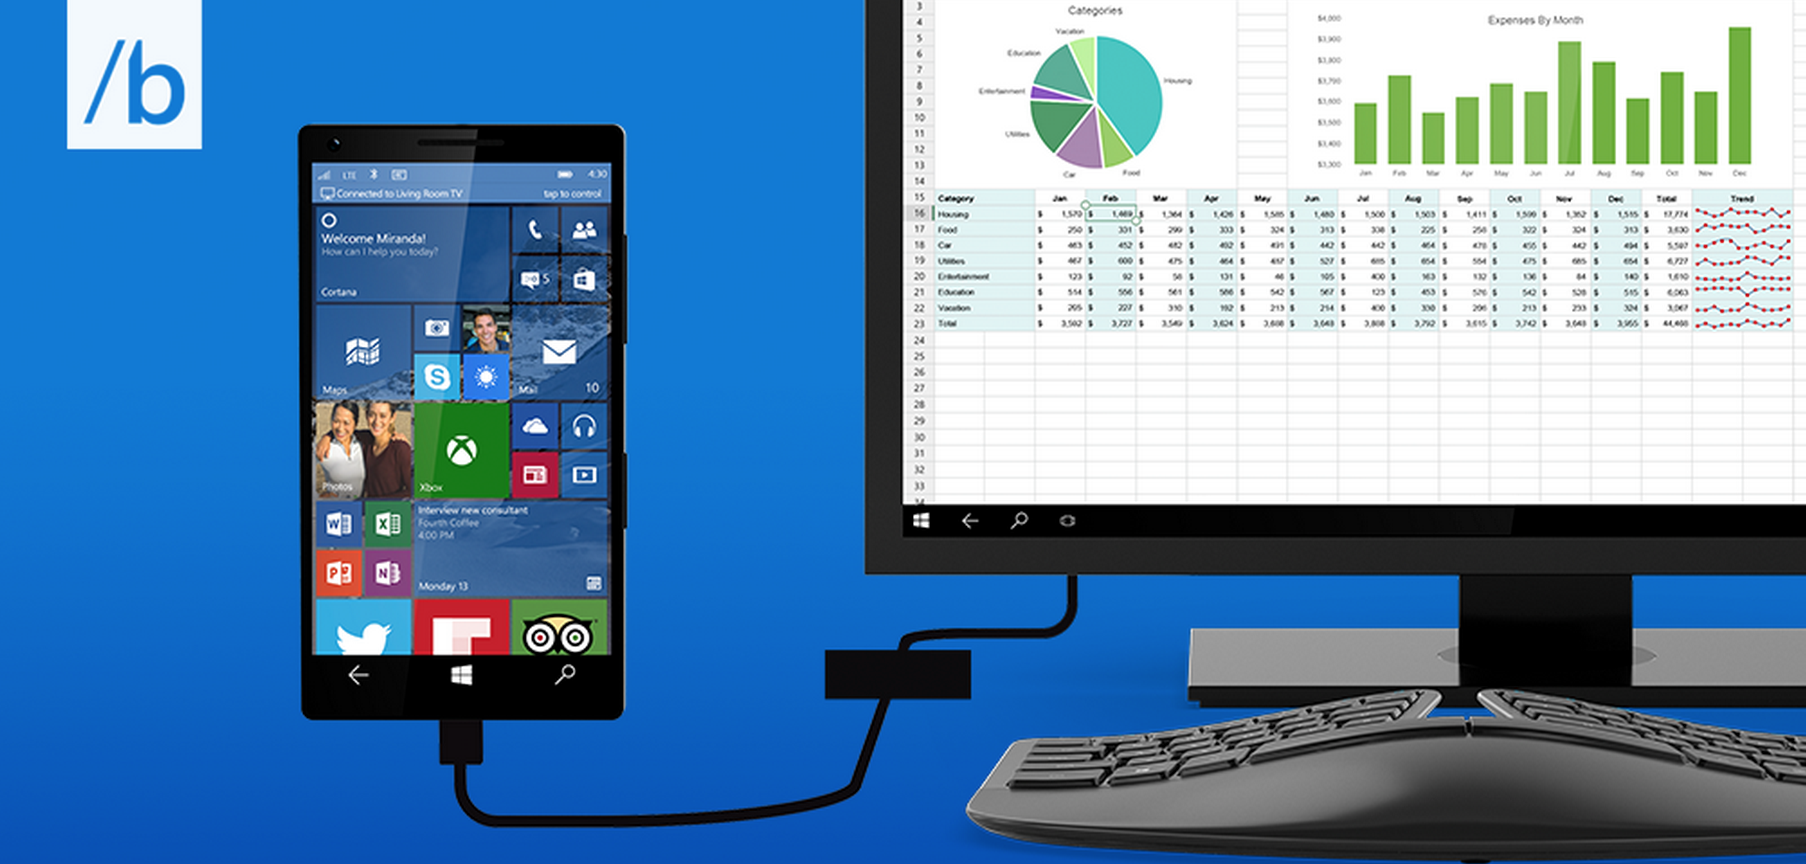 Microsoft Announces Continuum Turning Windows 10 Phones